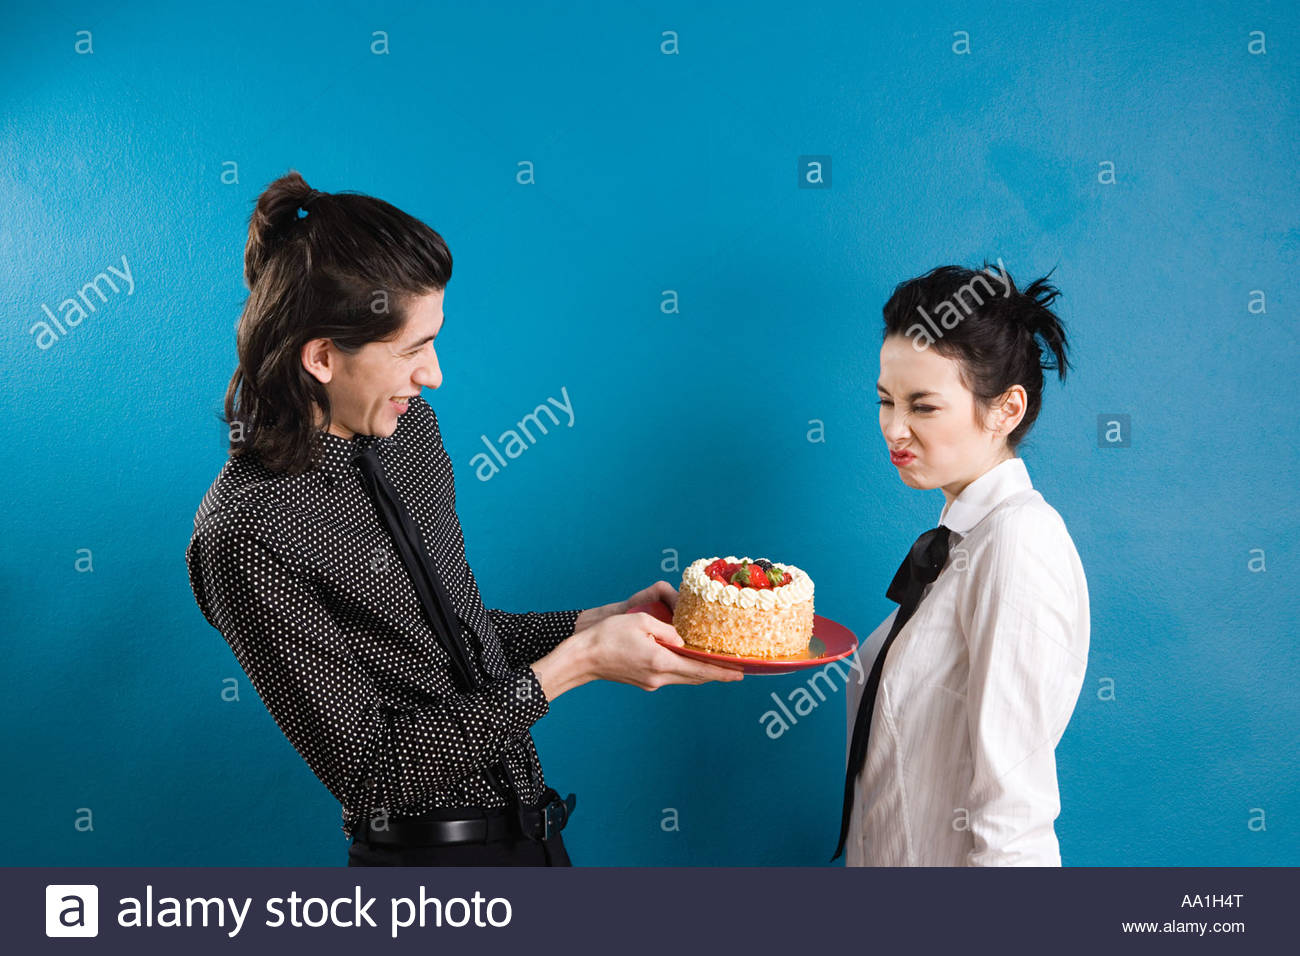 Man offering cake to grimacing woman - Stock Image